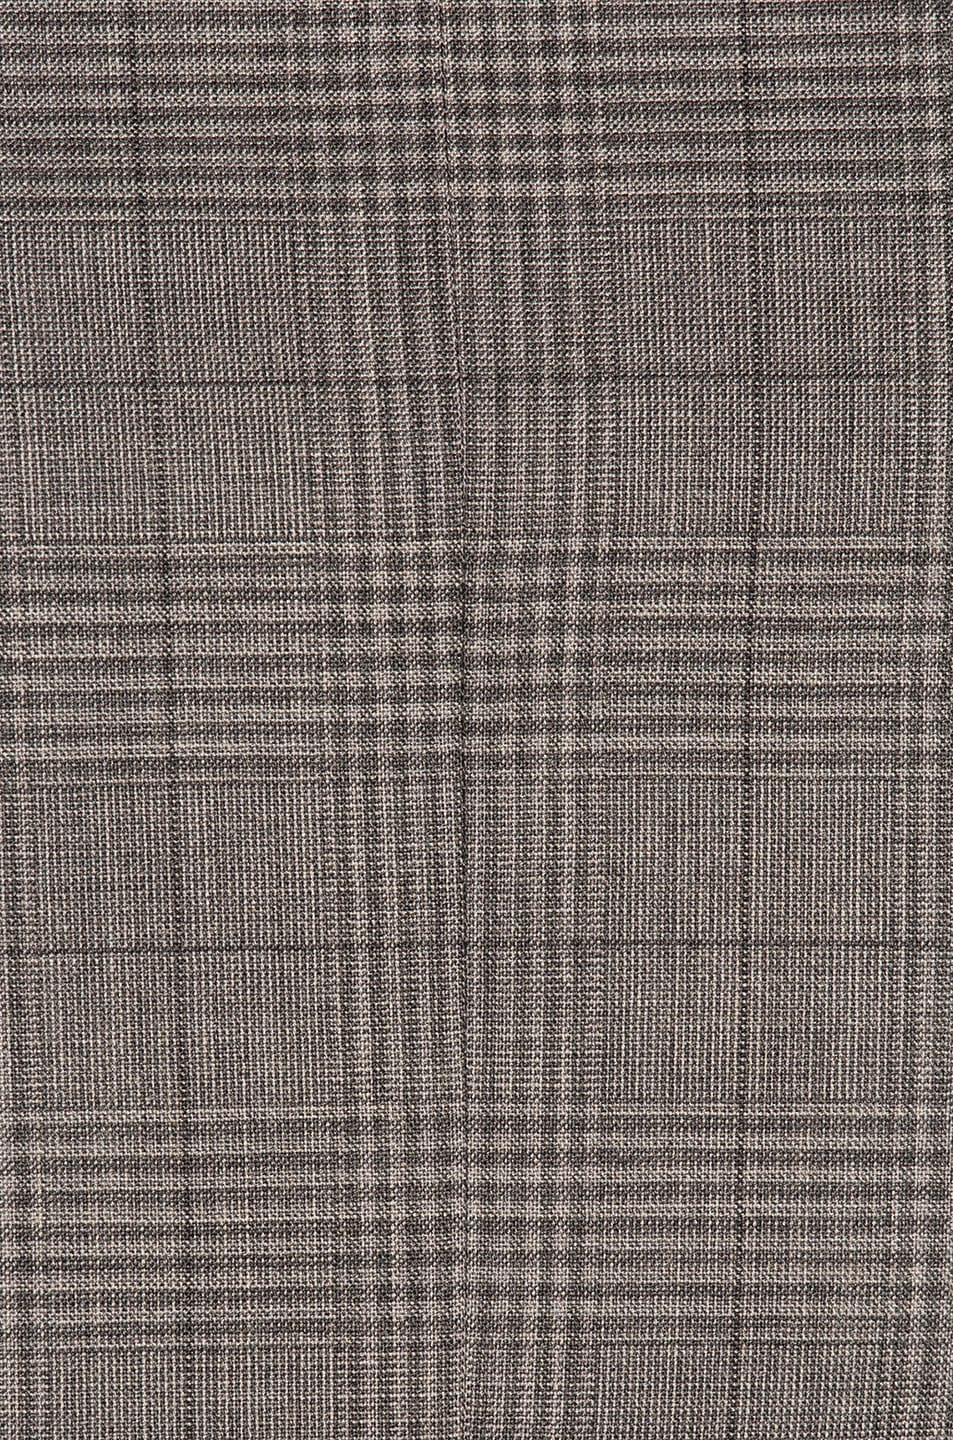 Image 8 of Thom Browne Classic Gingham Cool Wool Suit with Tie in Medium Grey